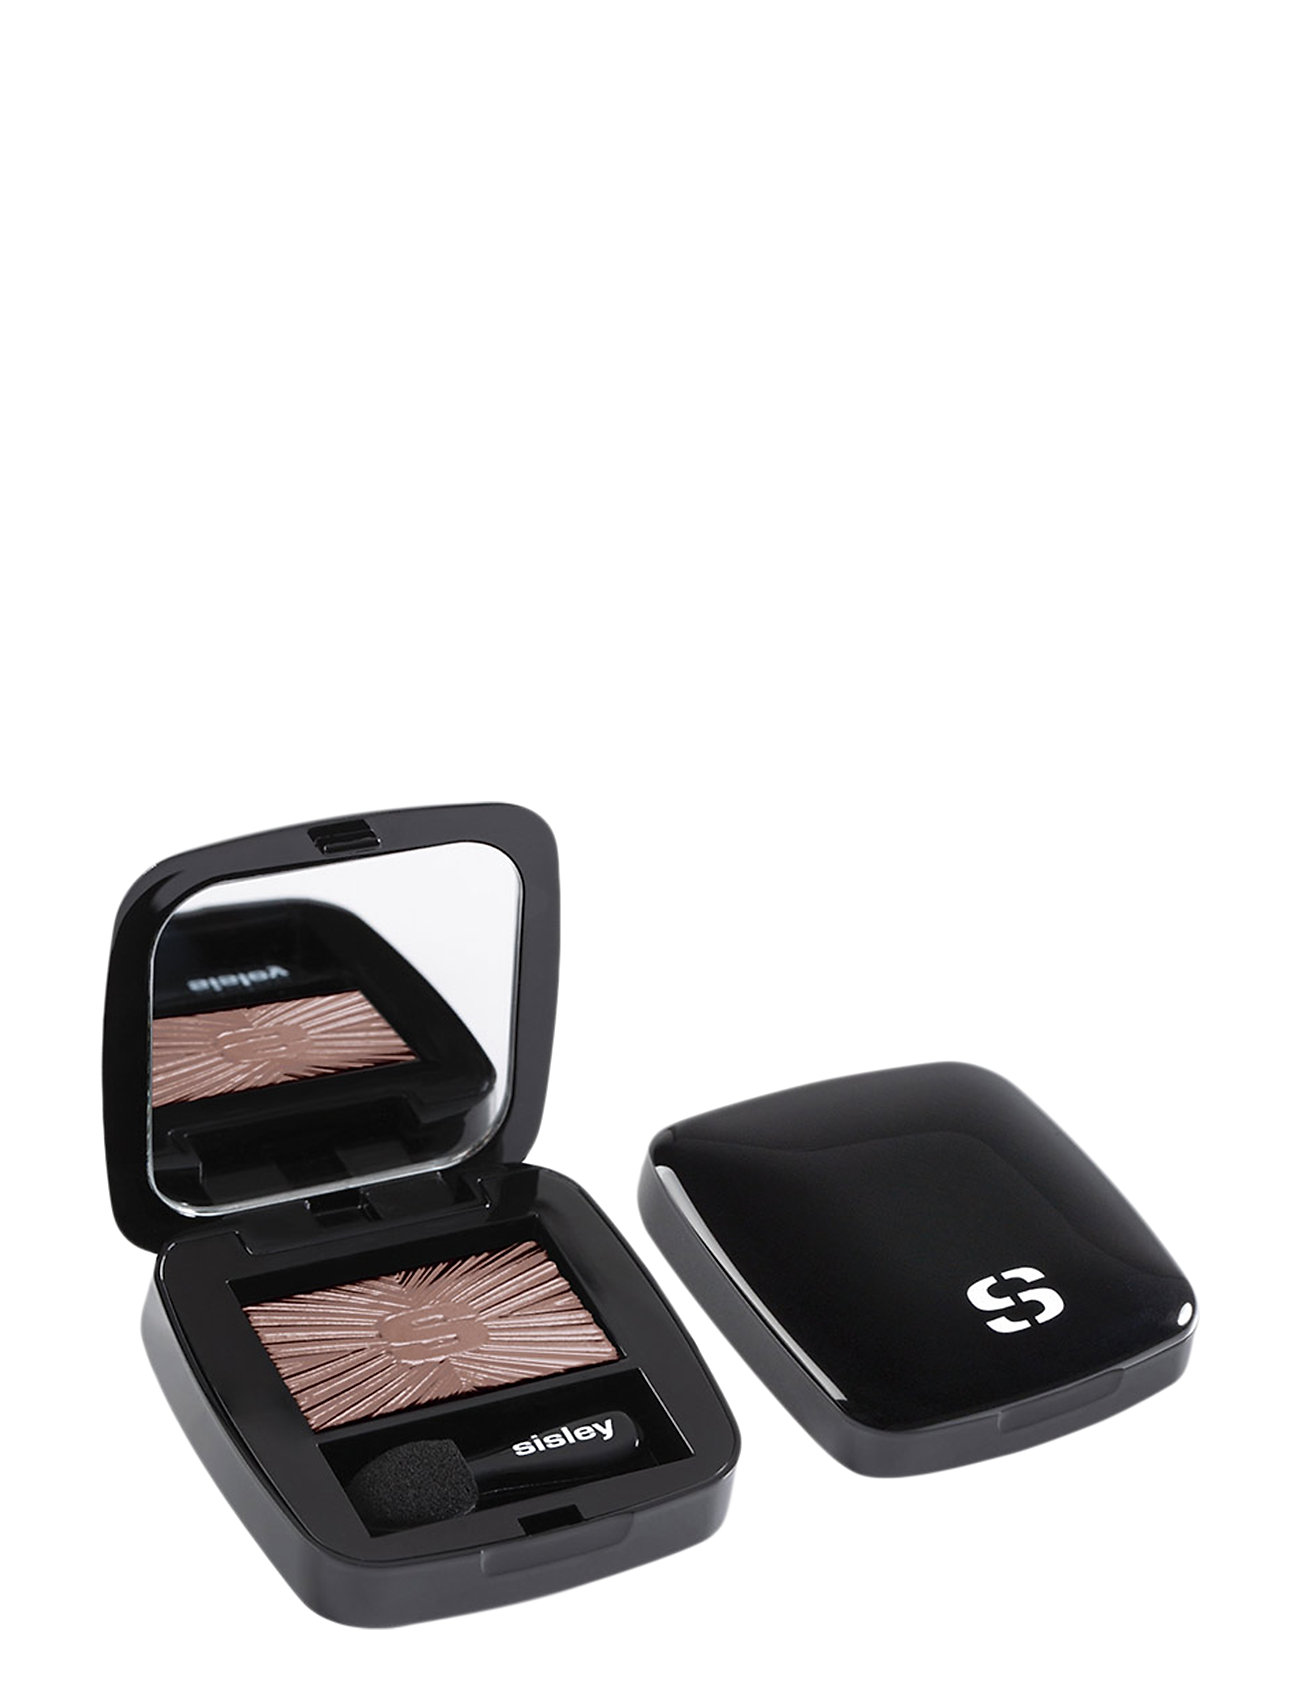 Image of Phyto-Ombre Eclat 20 Silky Chestnut Beauty WOMEN Makeup Eyes Eyeshadow - Not Palettes Sisley (3280079589)